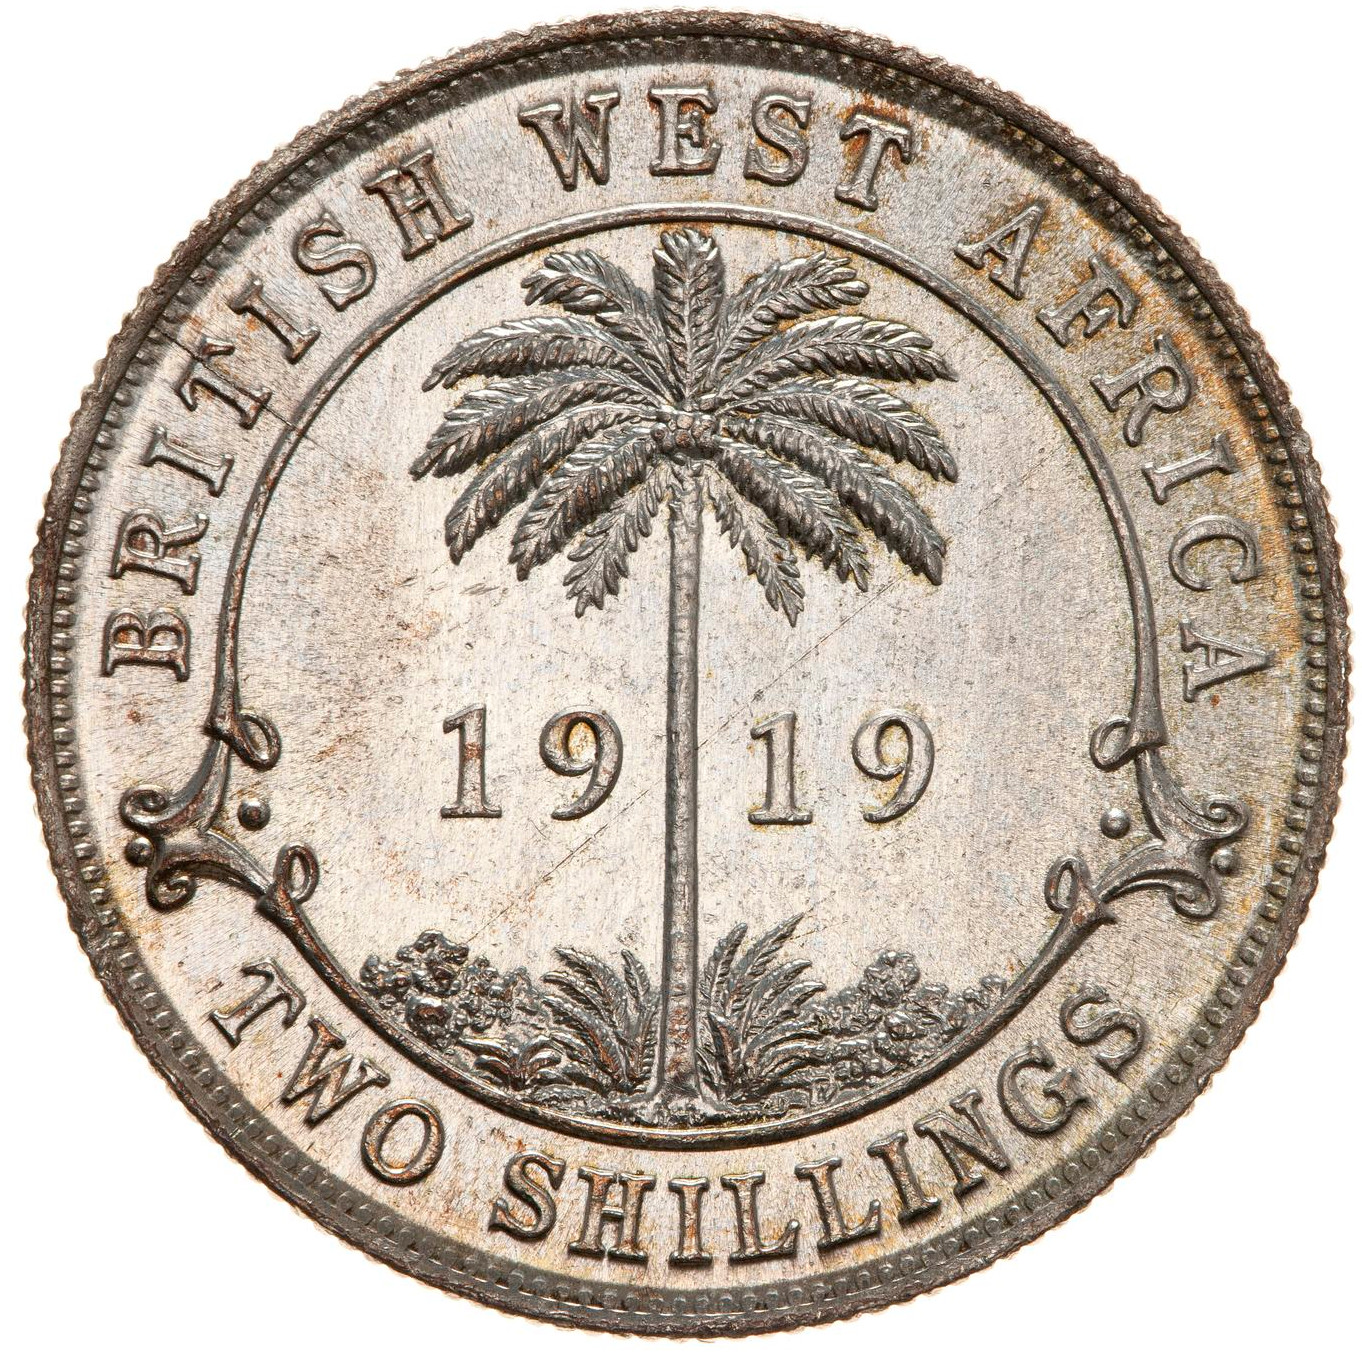 Two Shillings, Silver: Photo Coin - 2 Shillings, British West Africa, 1919